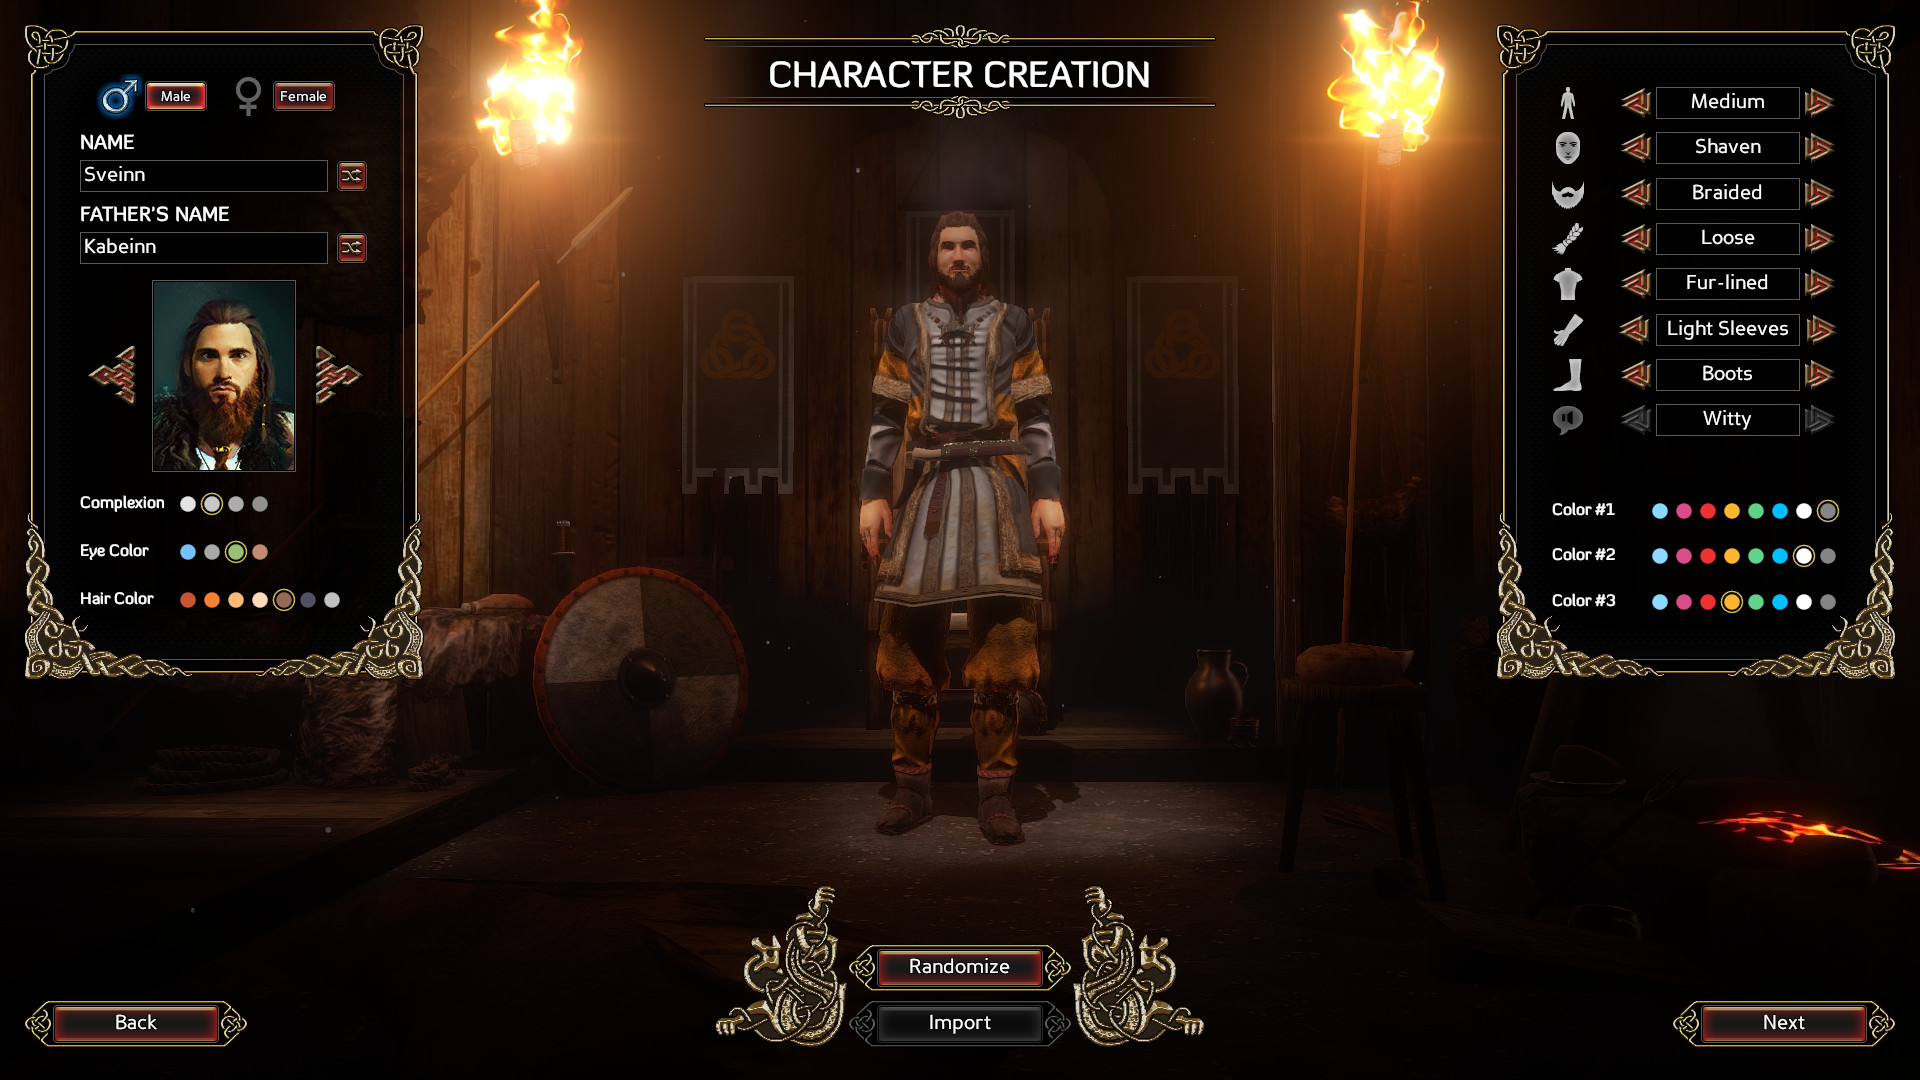 EXPEDITION VIKING DIGITAL DELUXE EDITION V1.0.7.4 FREE DOWNLOAD